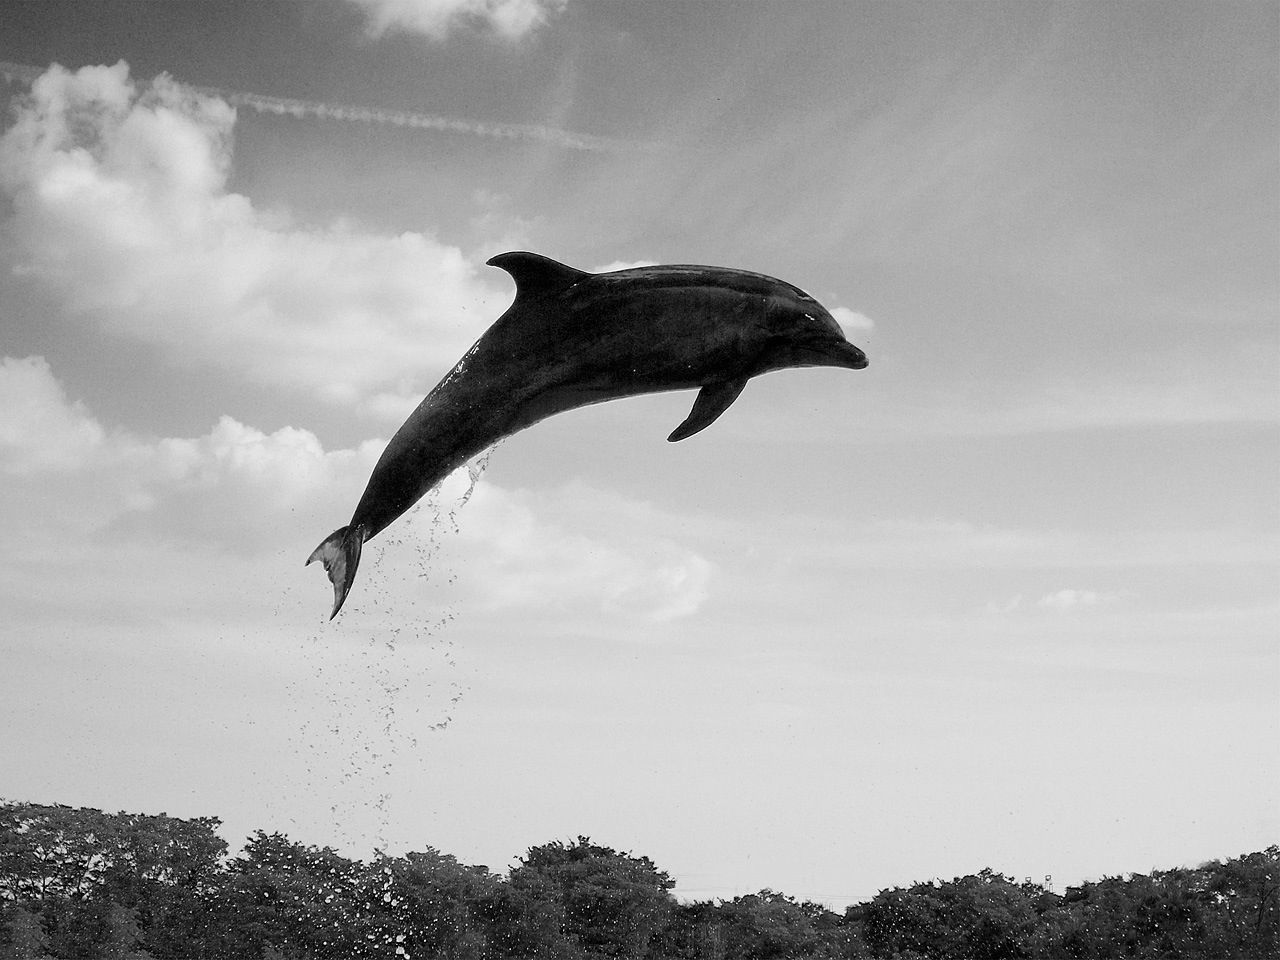 Side-view of dolphin in air